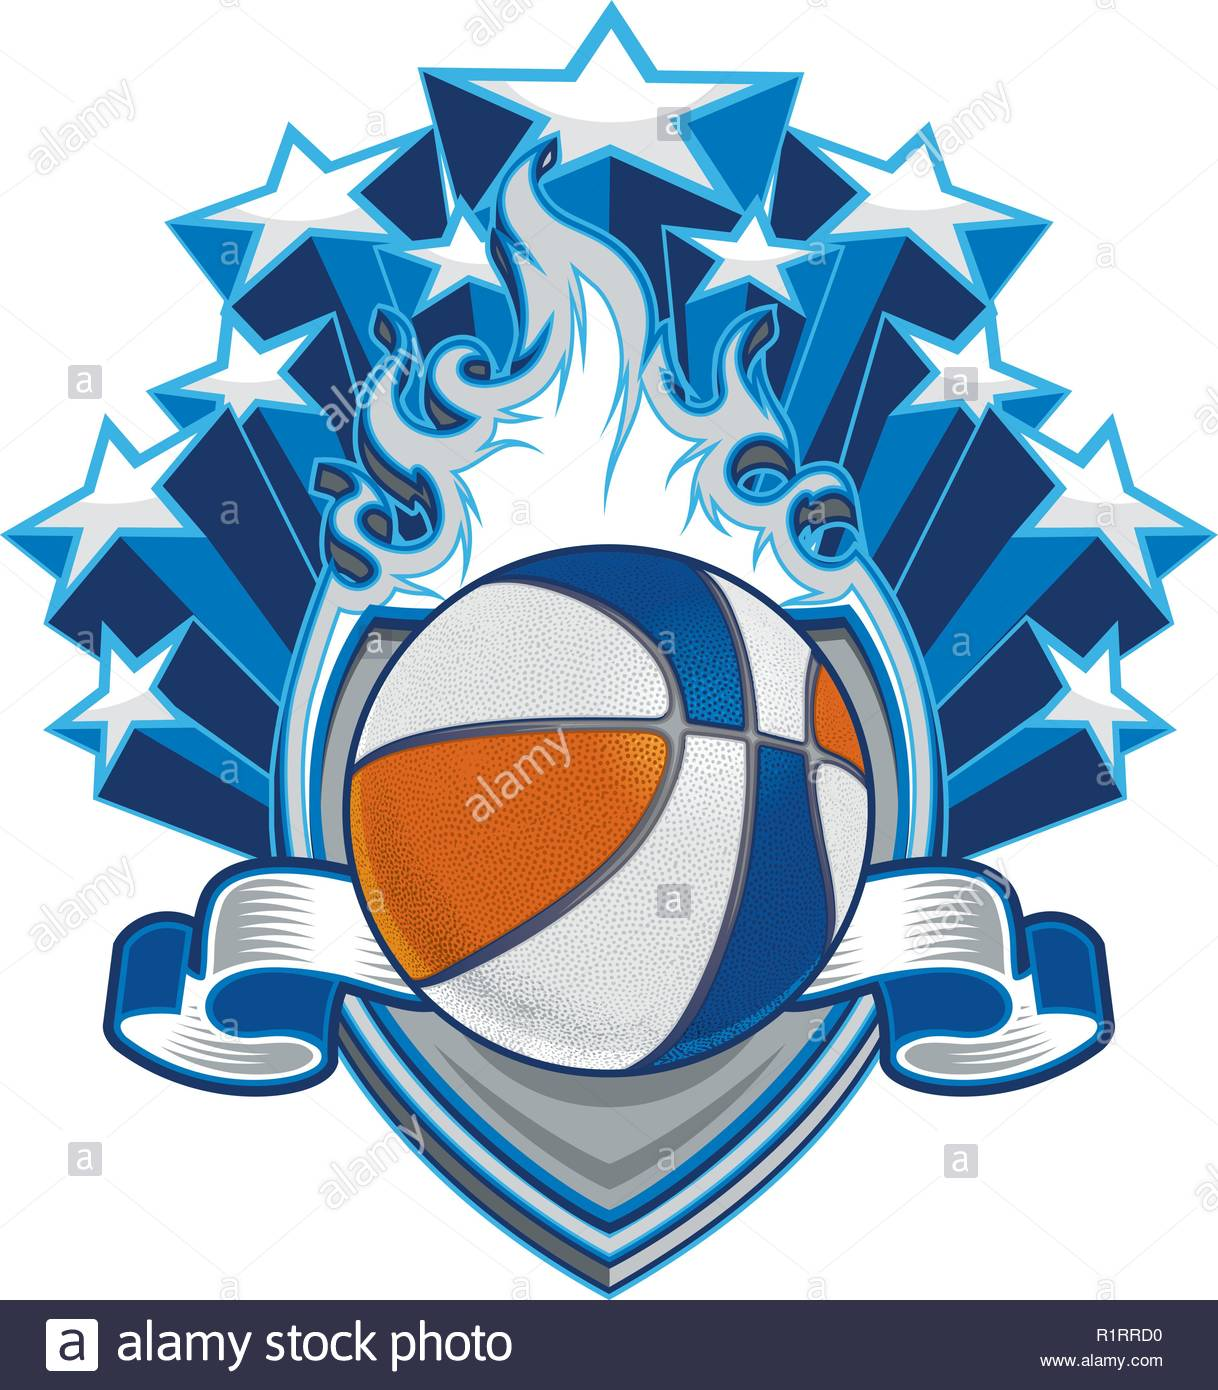 A basketball design resource of a flaming shield with a banner and stars emanating from its rear - Stock Vector